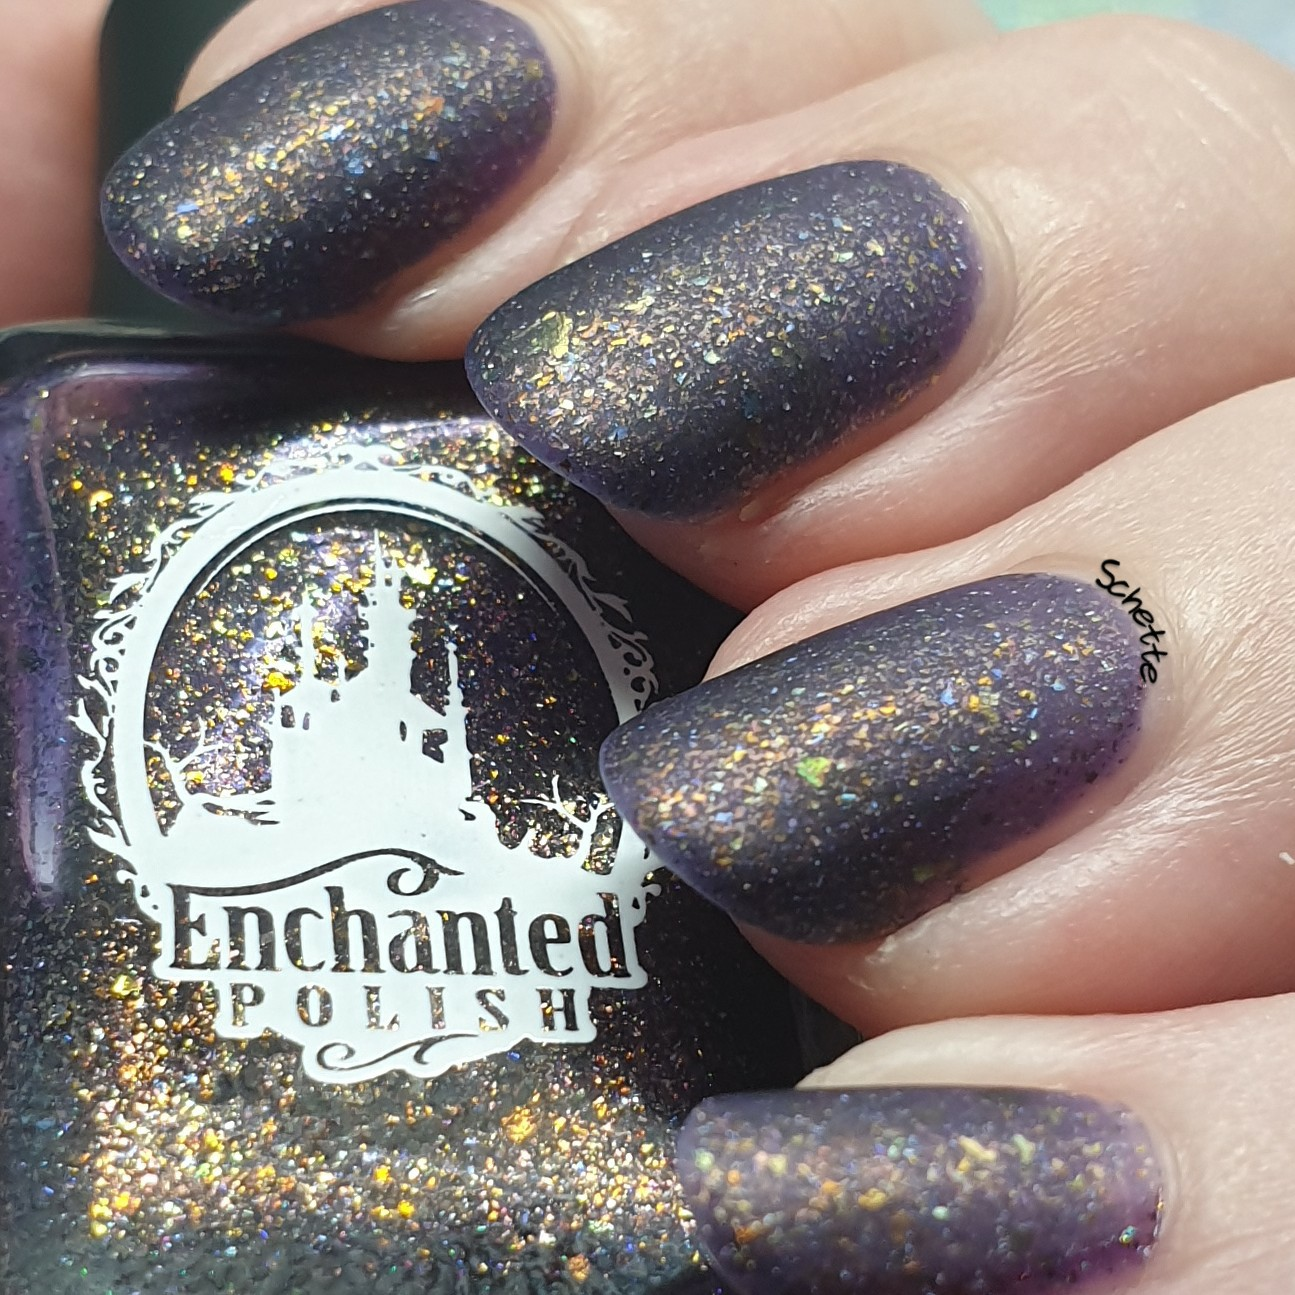 Enchanted Polish - Cosmic Dust